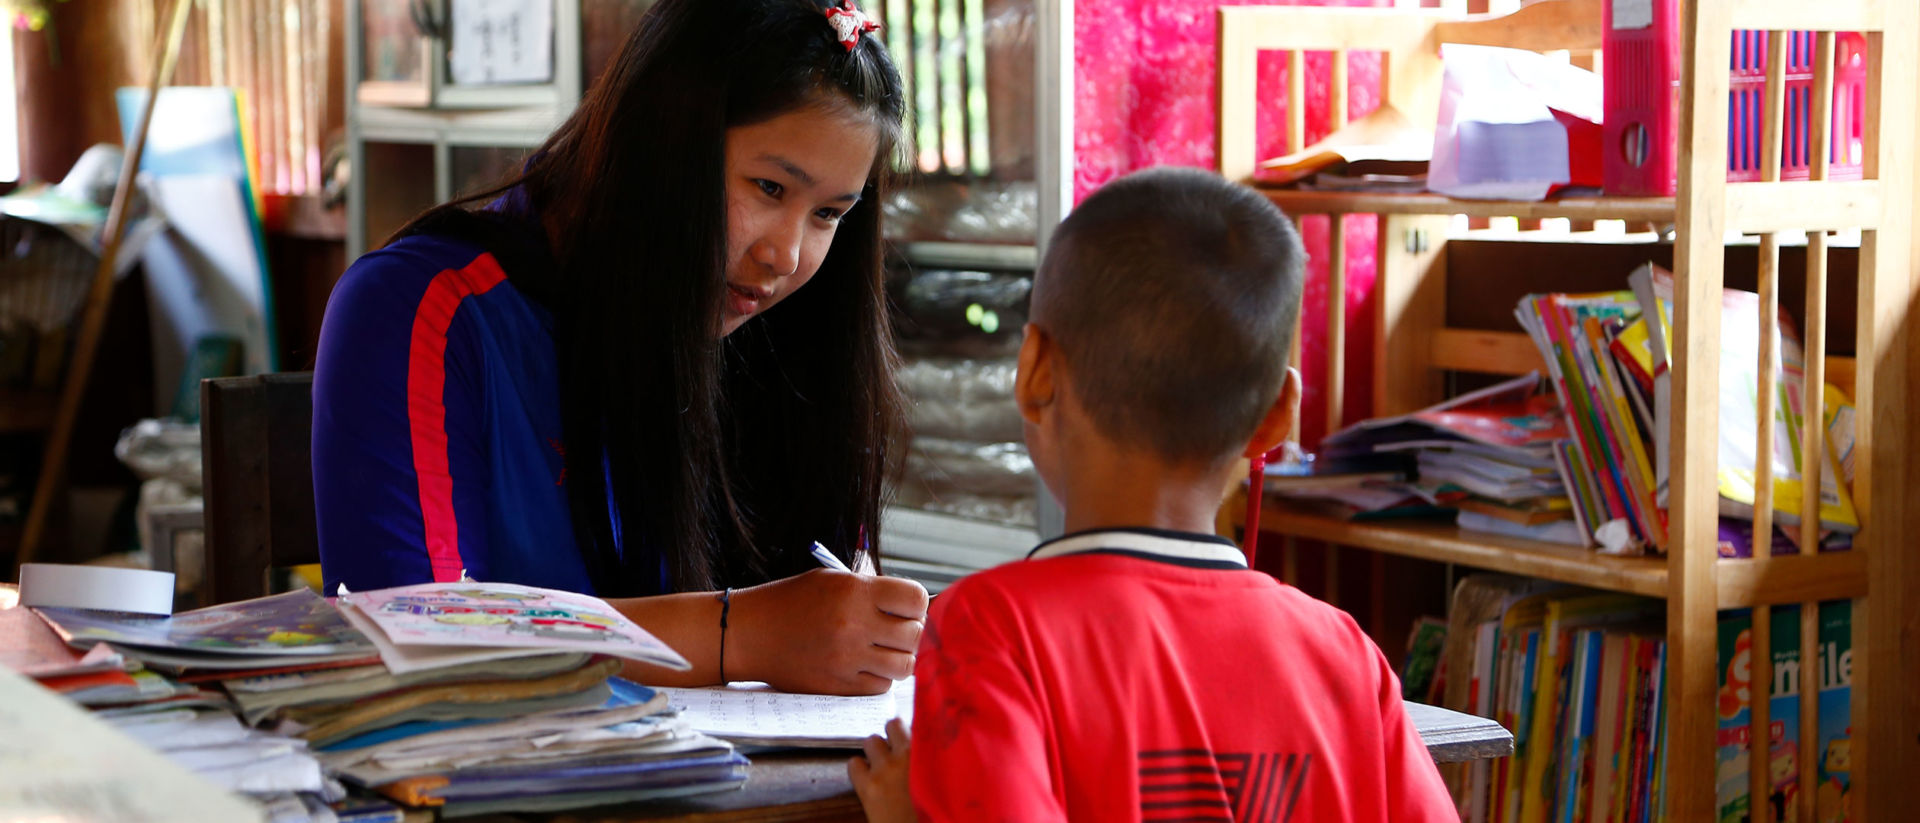 Sponsored children go to school and get extra tutoring from the caring adults at their Compassion center.